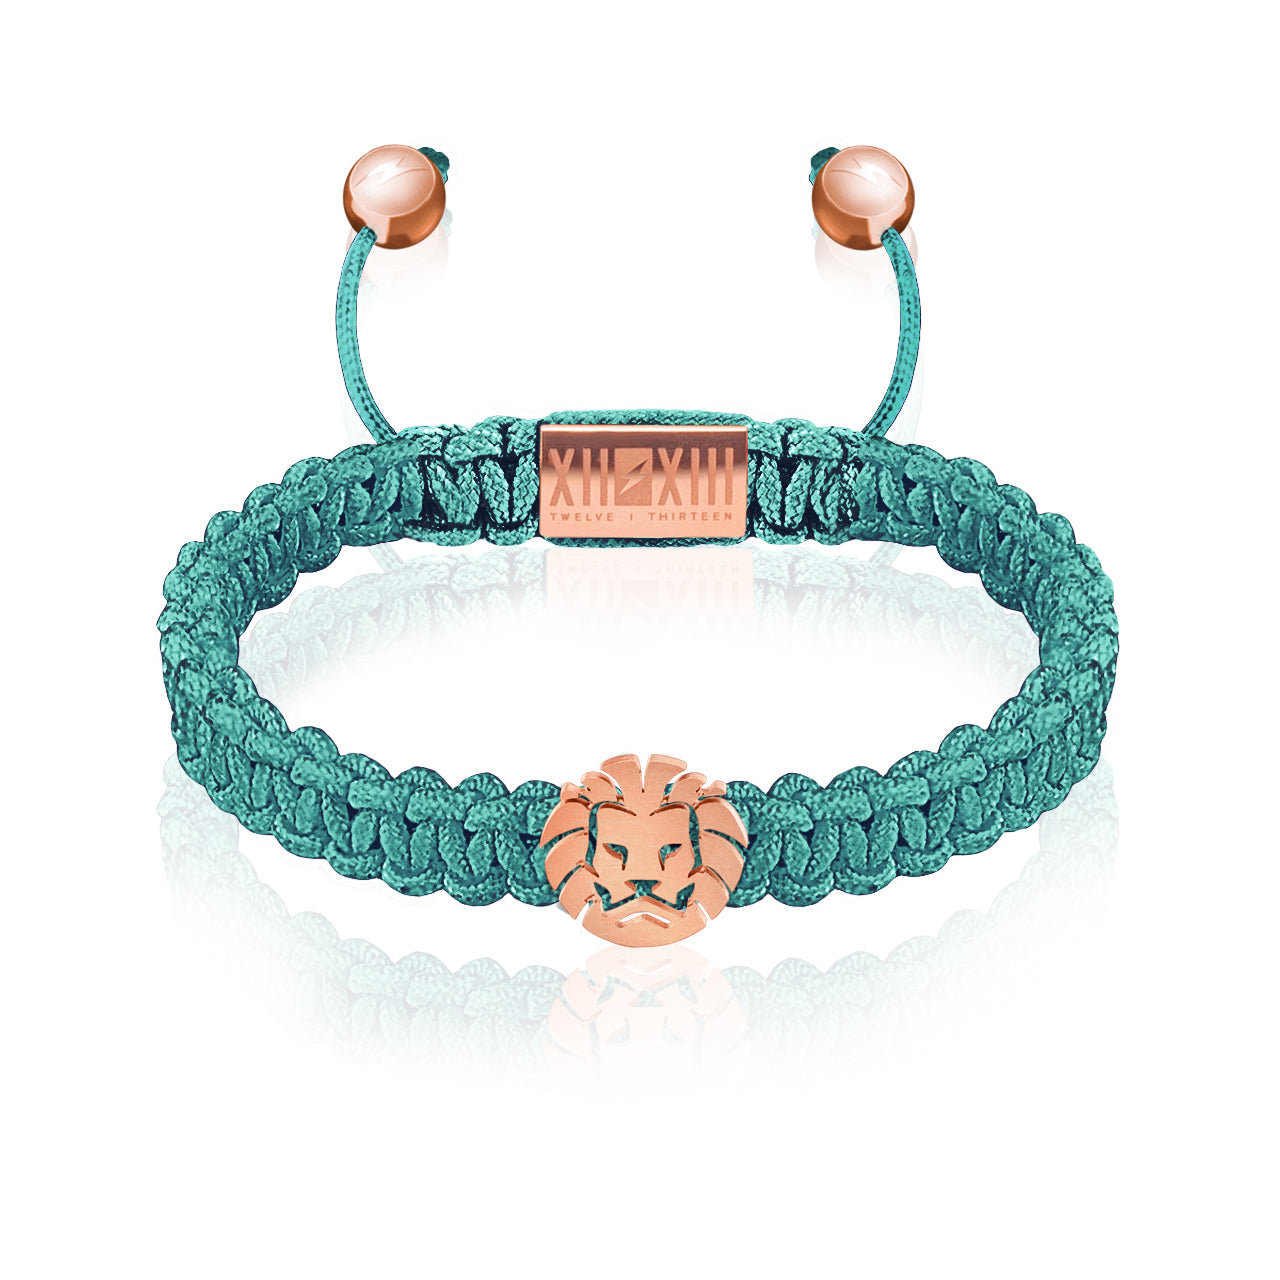 WATCHANISH by Twelve Thirteen Jewelry macramé braided bracelet - Turquoise/Matte Rose Gold